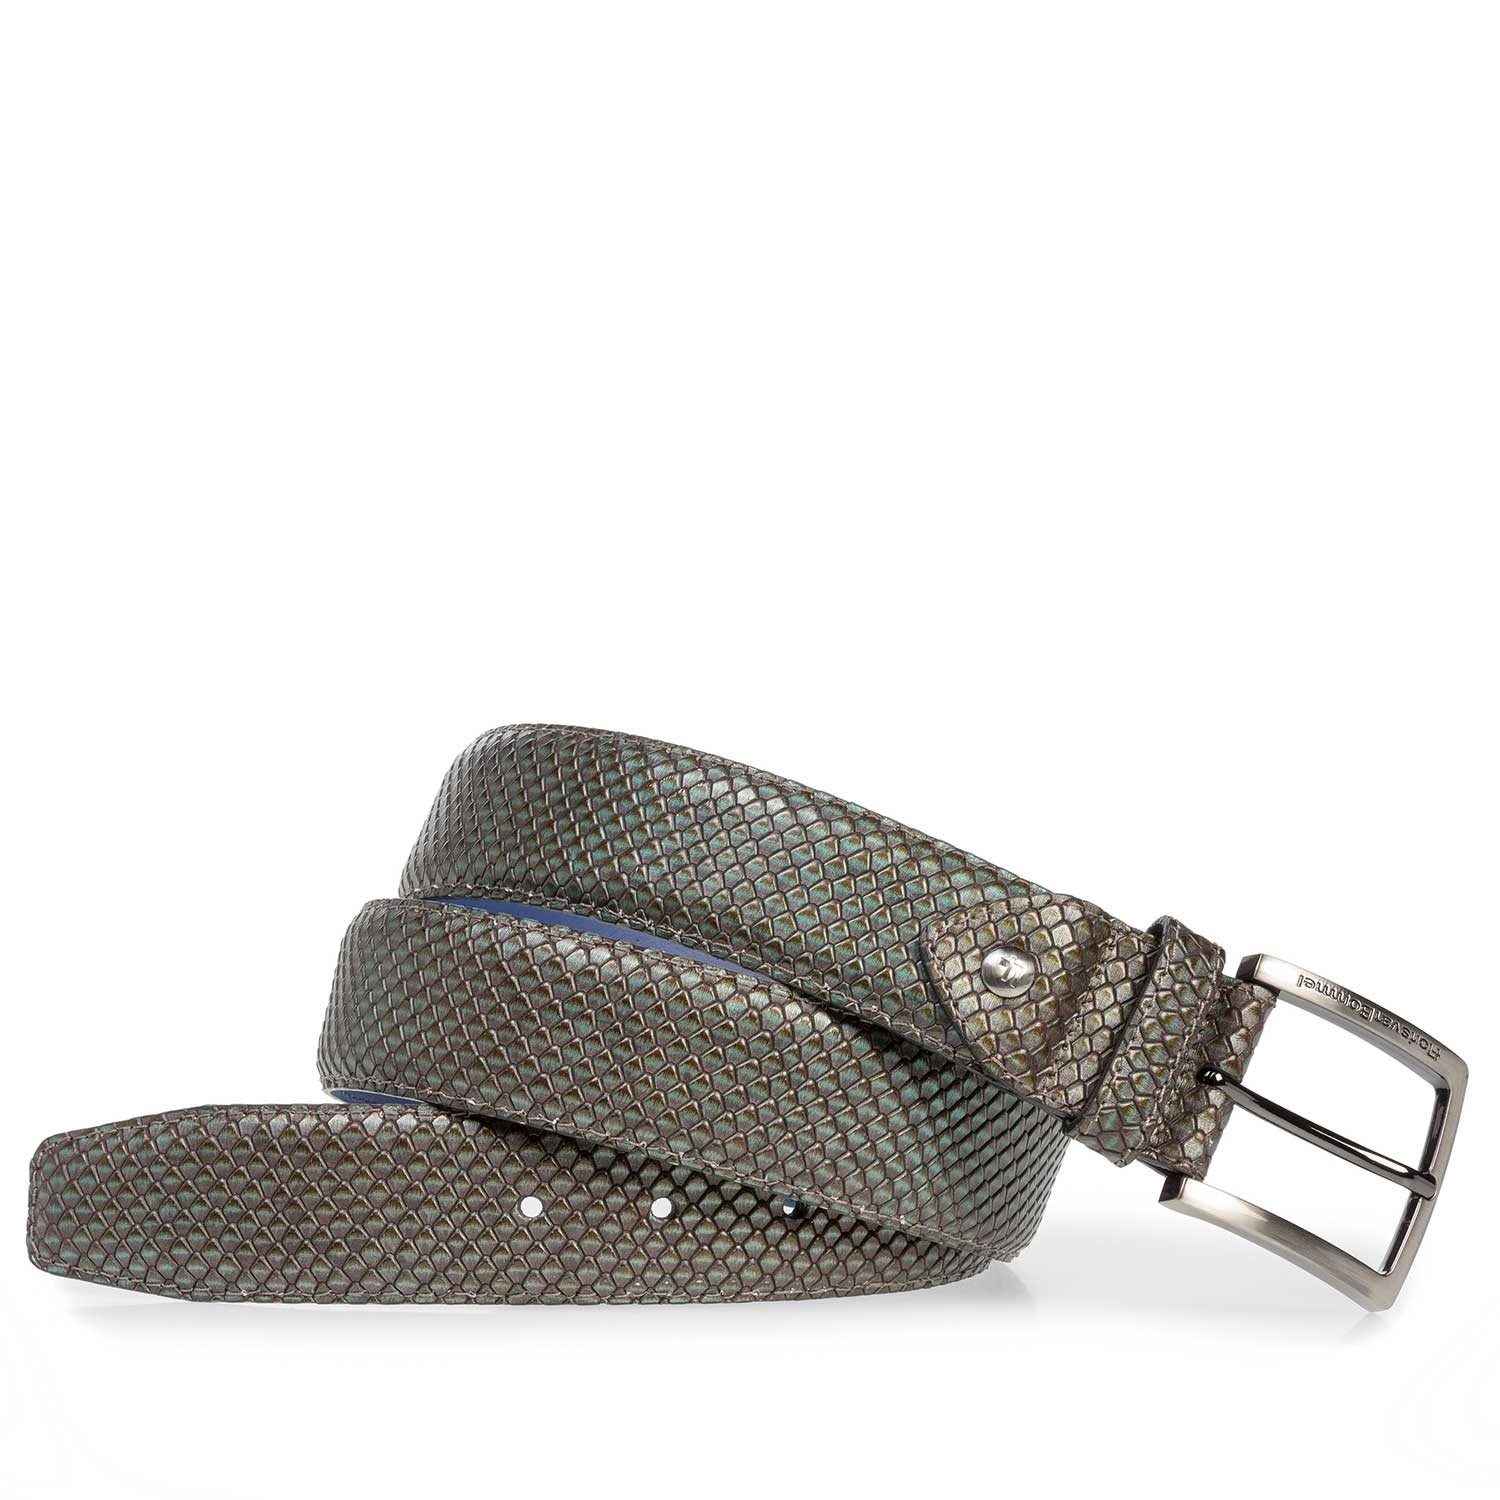 75202/16 - Premium green printed metallic leather belt